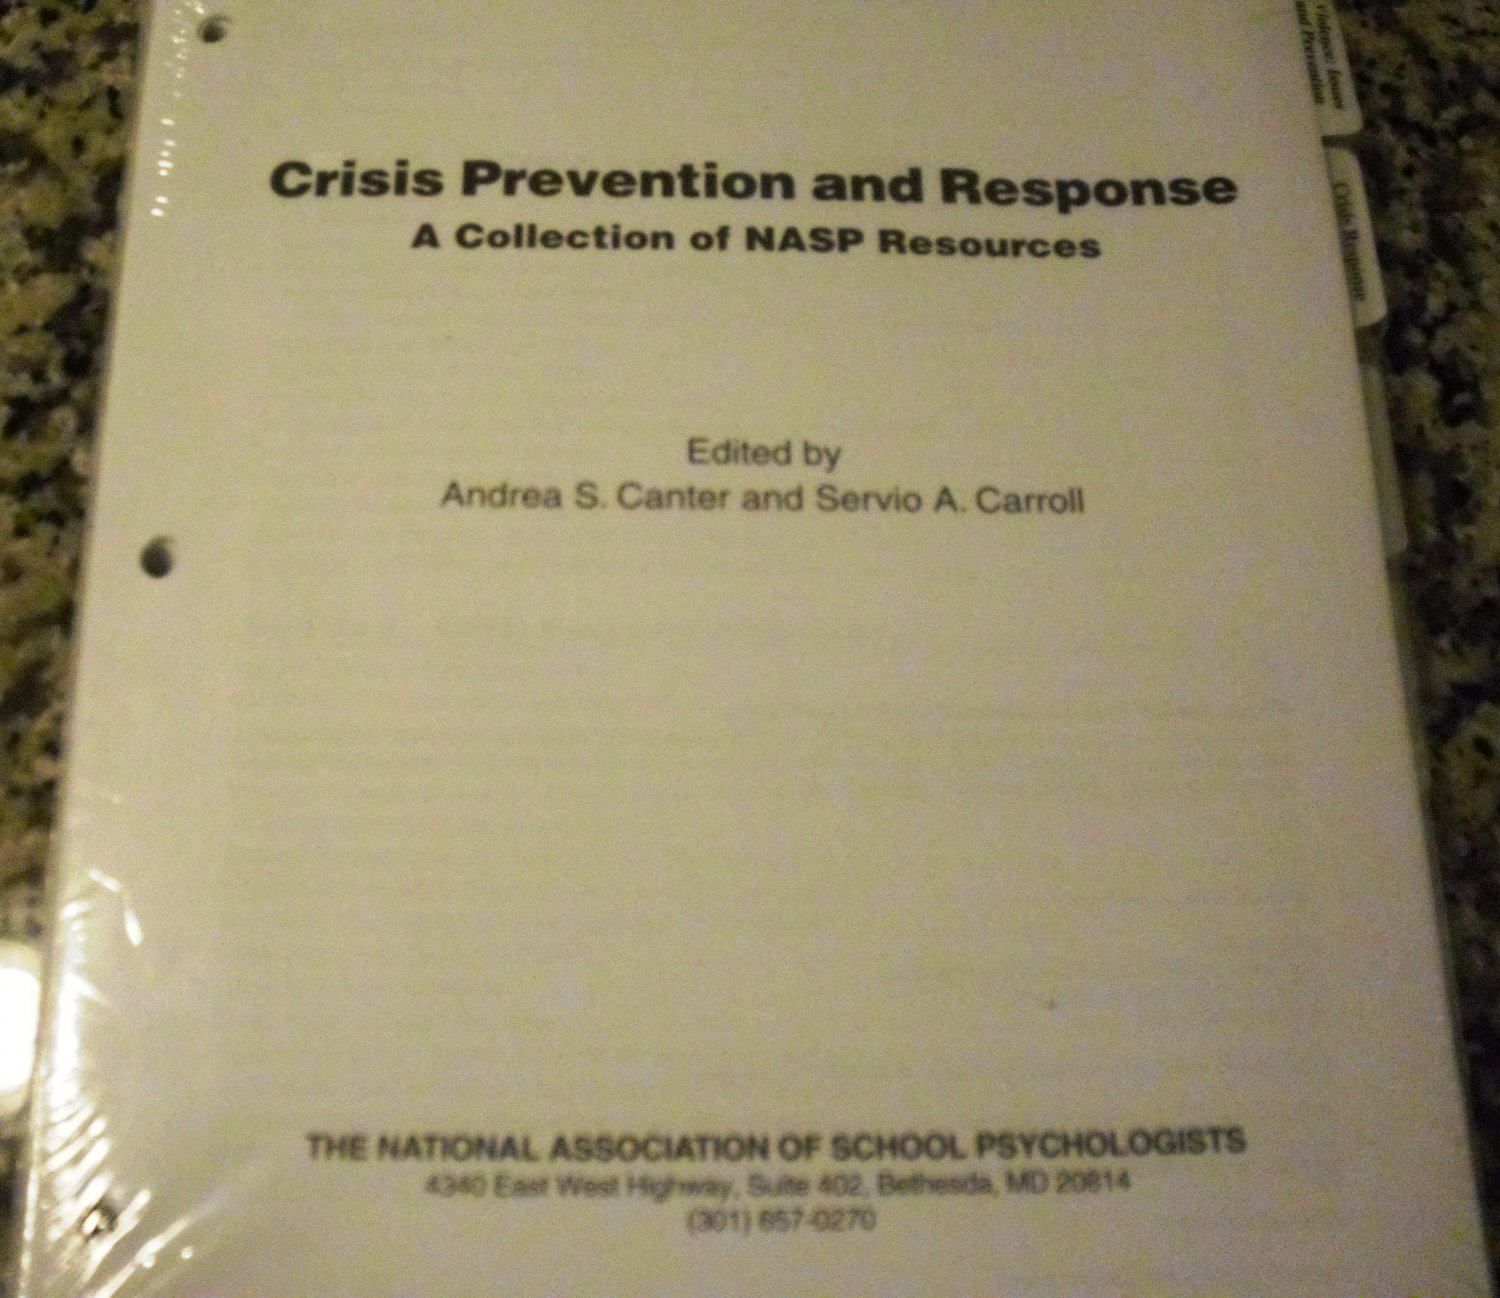 Crisis Prevention and Response: A Collection of NASP Resources  Edited by A Canter & S Carroll